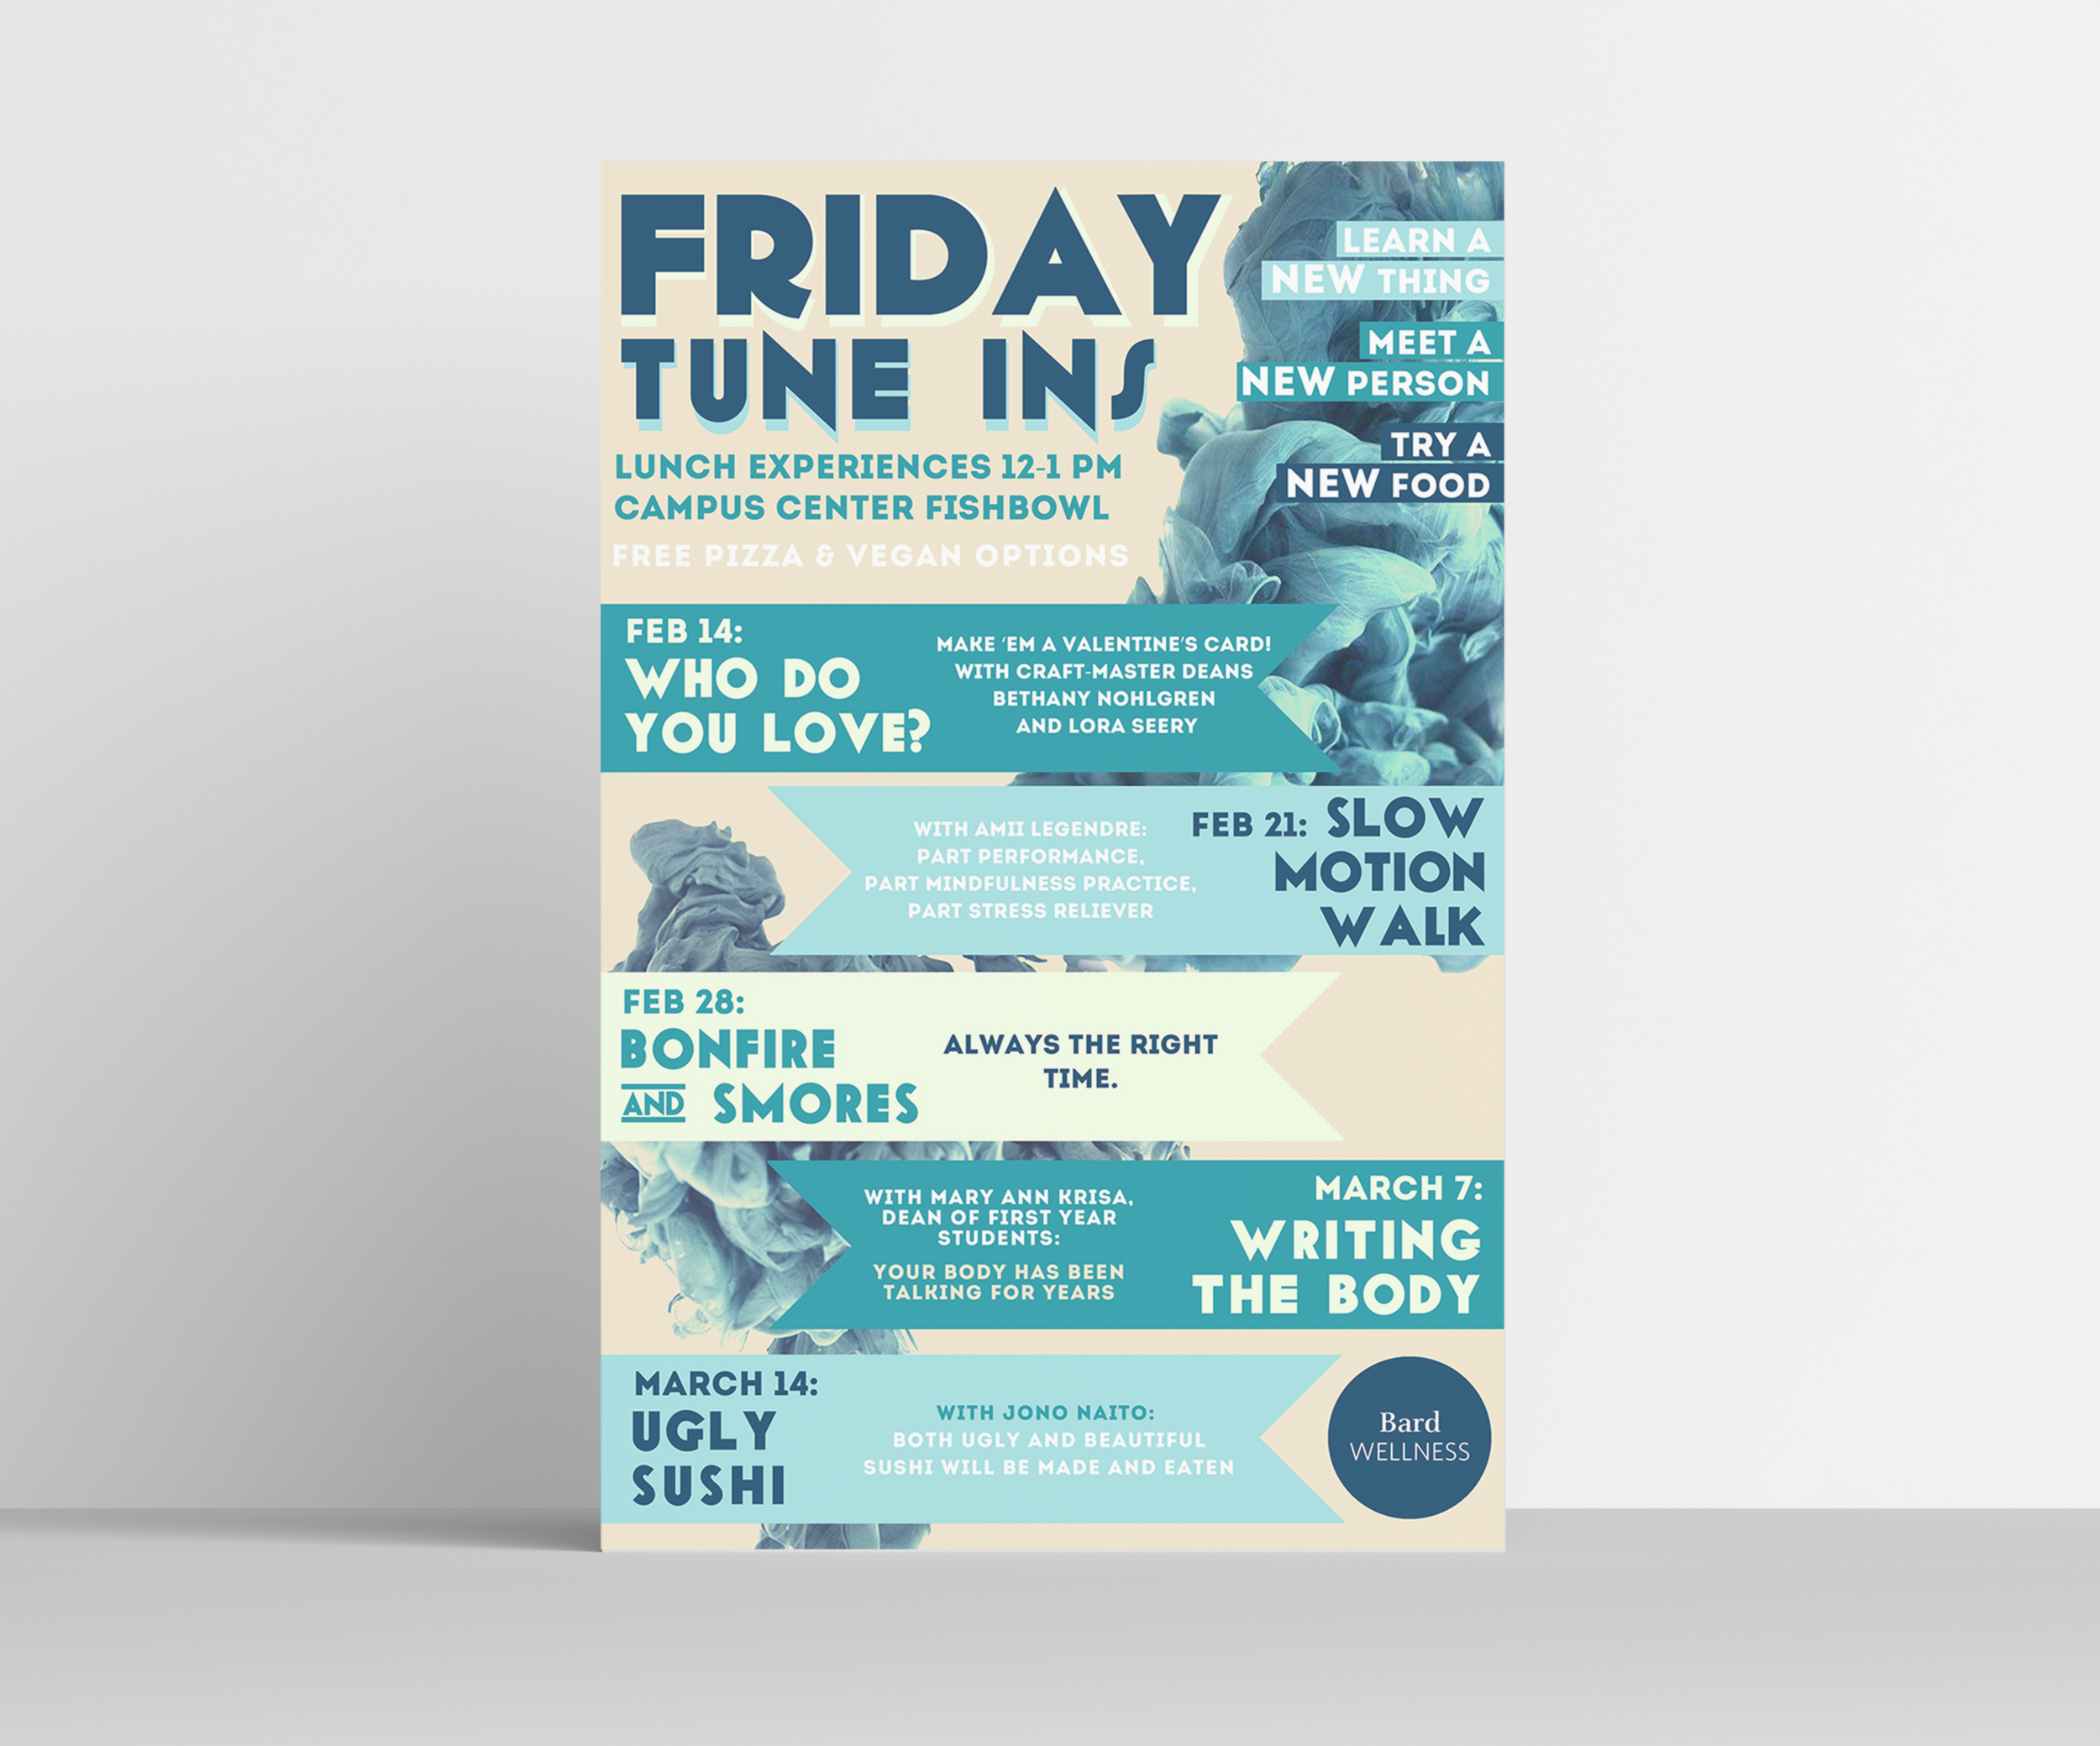 Friday Tune In Events